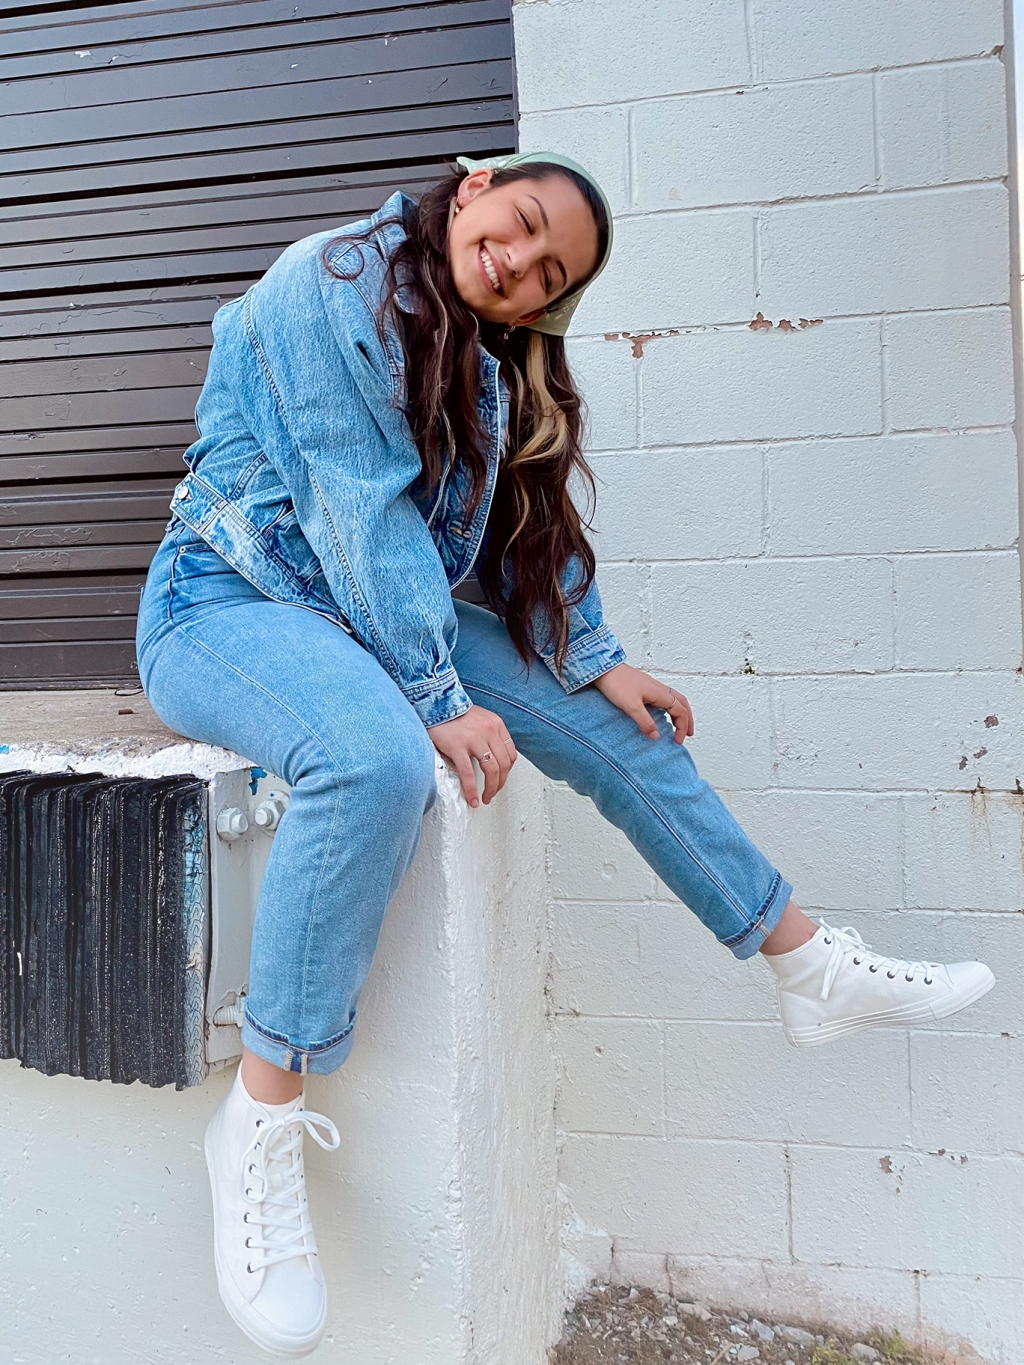 woman wearing a jean jacket and light wash jeans